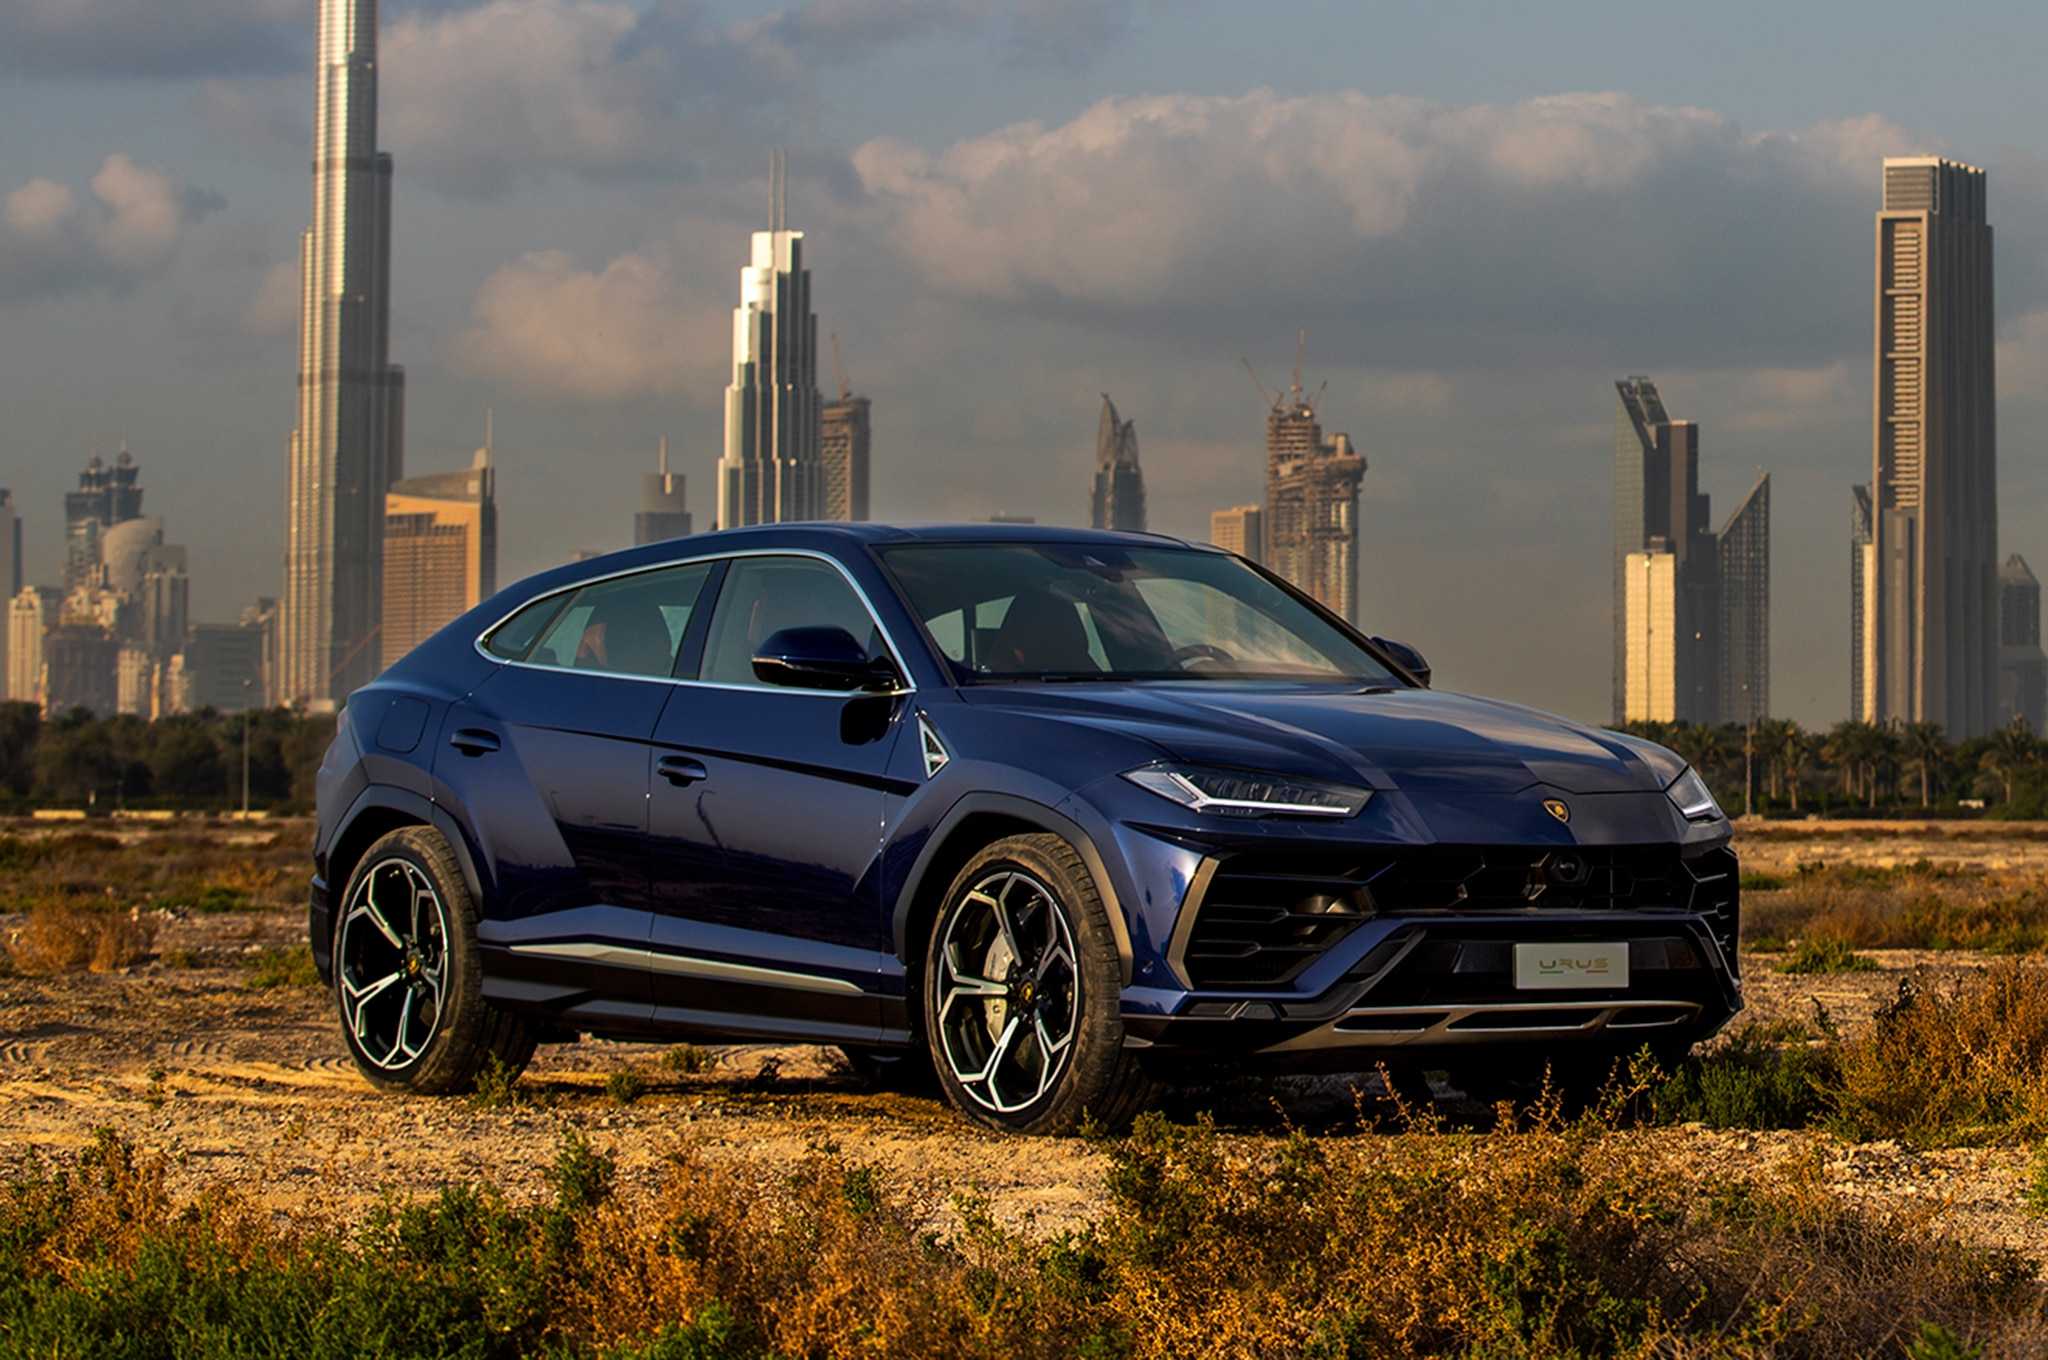 Urus Lamborghini >> 2019 Lamborghini Urus First Drive Review | Automobile Magazine